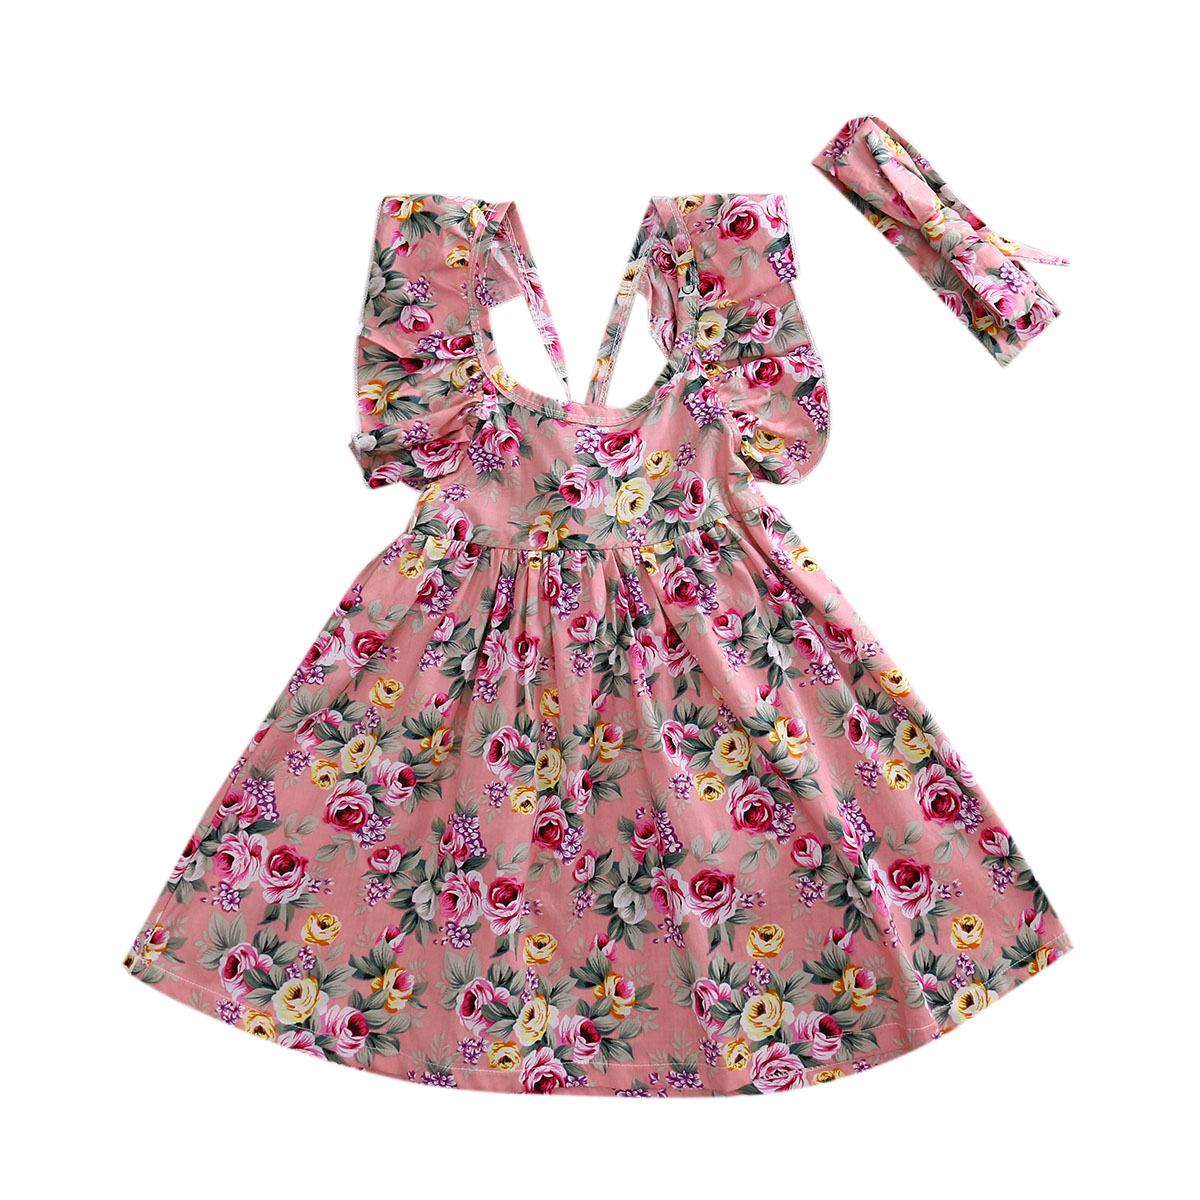 2017 New Summer Girls Floral Dress Ruffles Children Kids Backless Party Dresses +Headband 2PCS Sundress Flower Clothes 1-6 Years folding s 1200 rotor shaft professional grade uav rack shaft large frame for 8 axis rc airplane plane